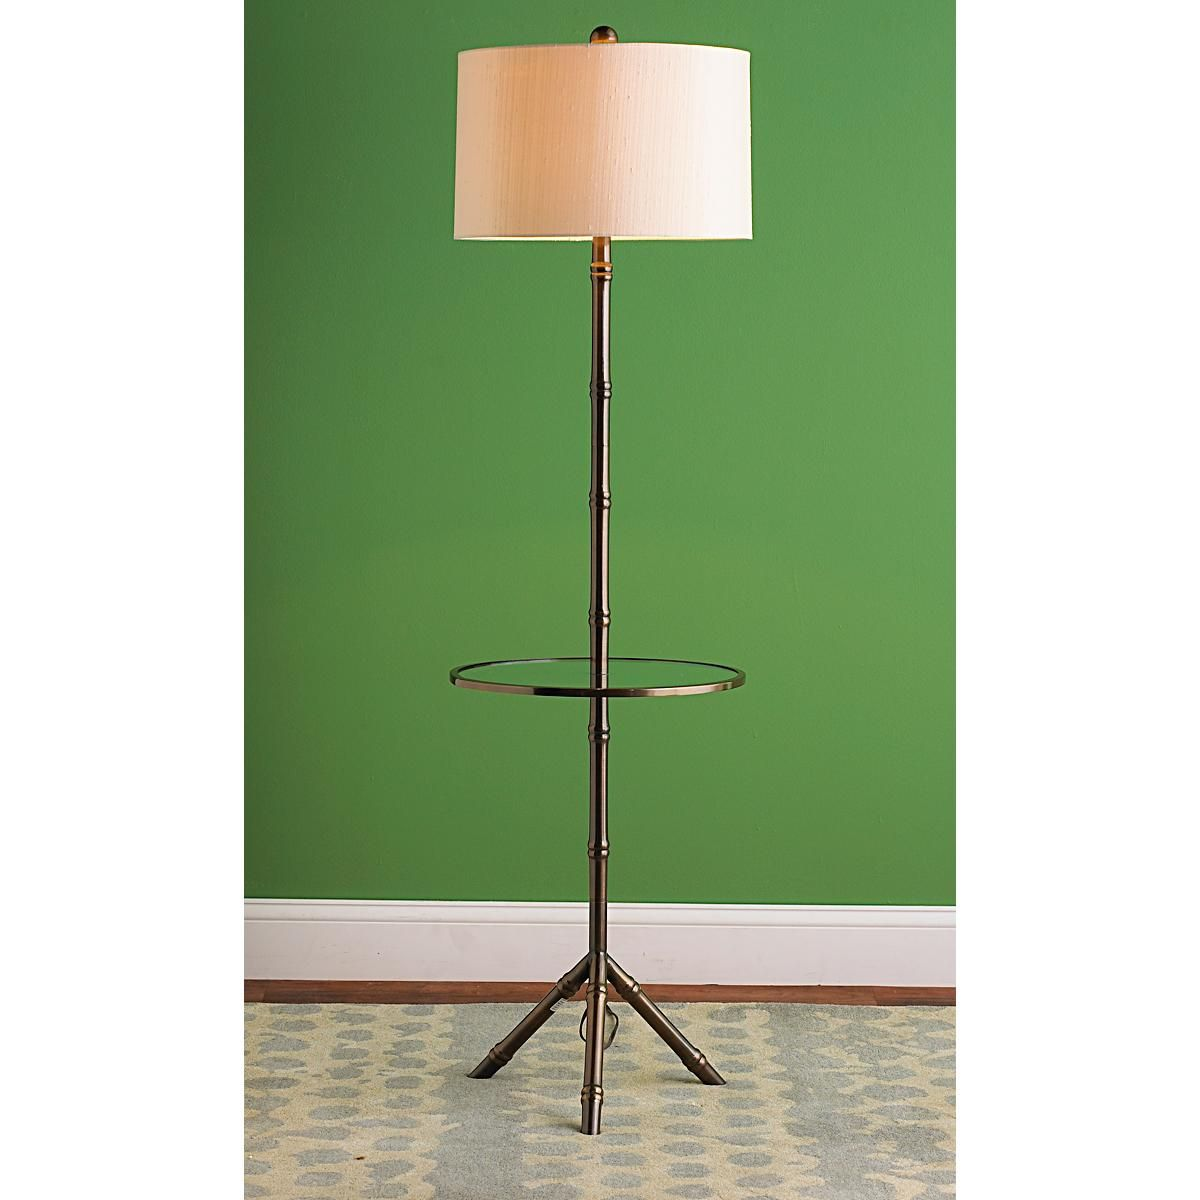 Bamboo Tray Table Floor Lamp 2 Finishes Floor Lamp Floor Lamp Table Floor Lamp Shades